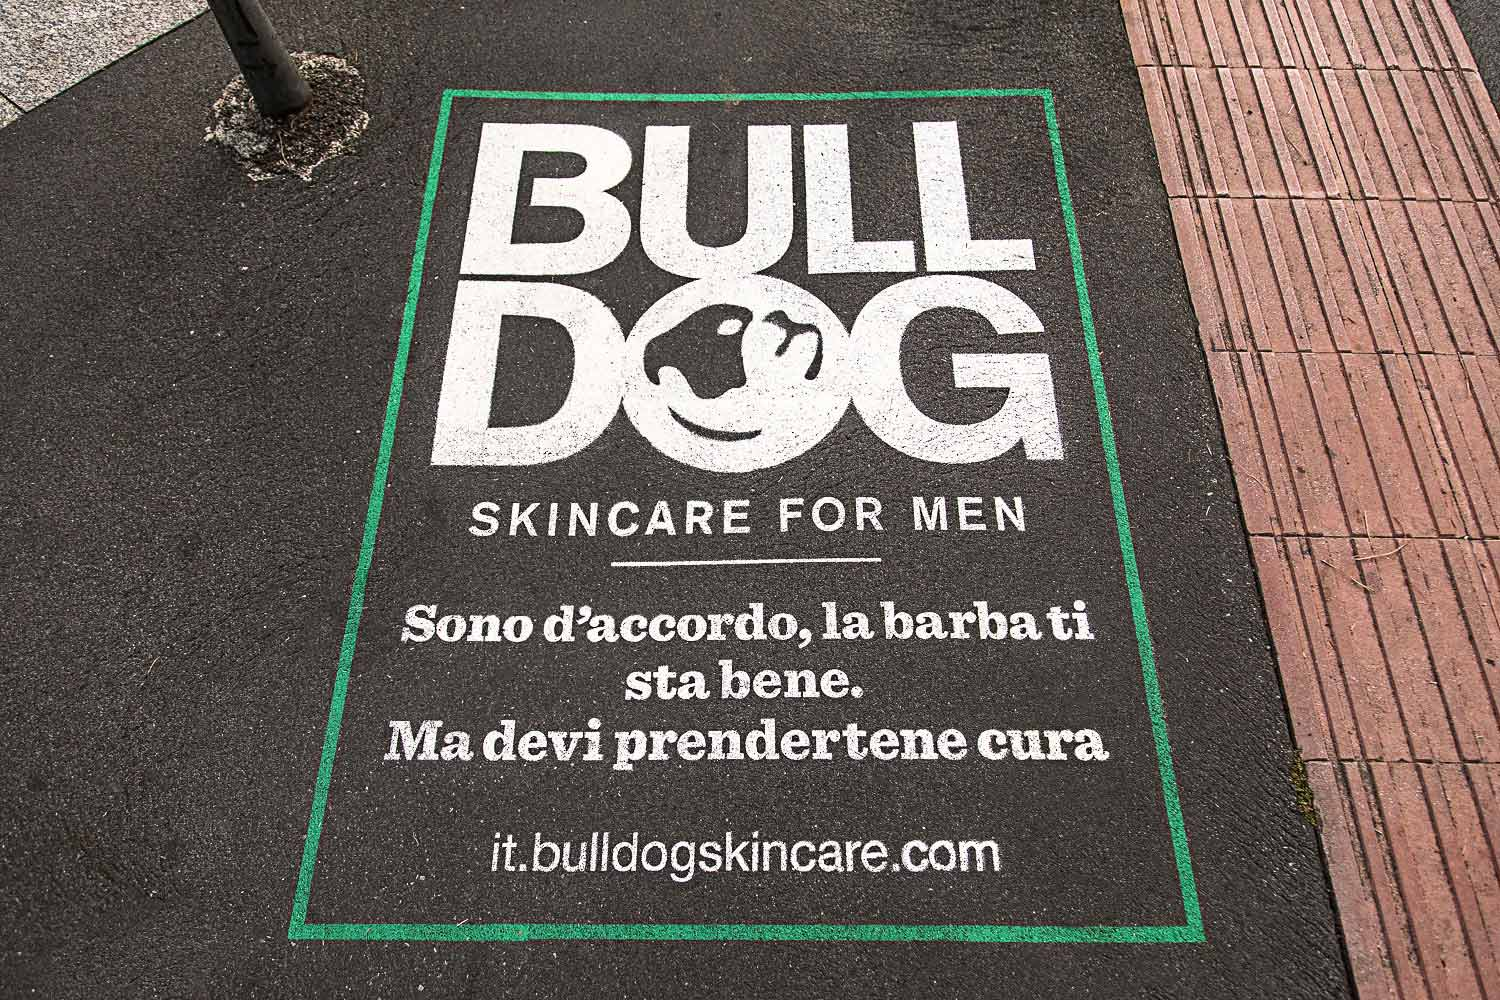 outdoor advertising bulldog skincare